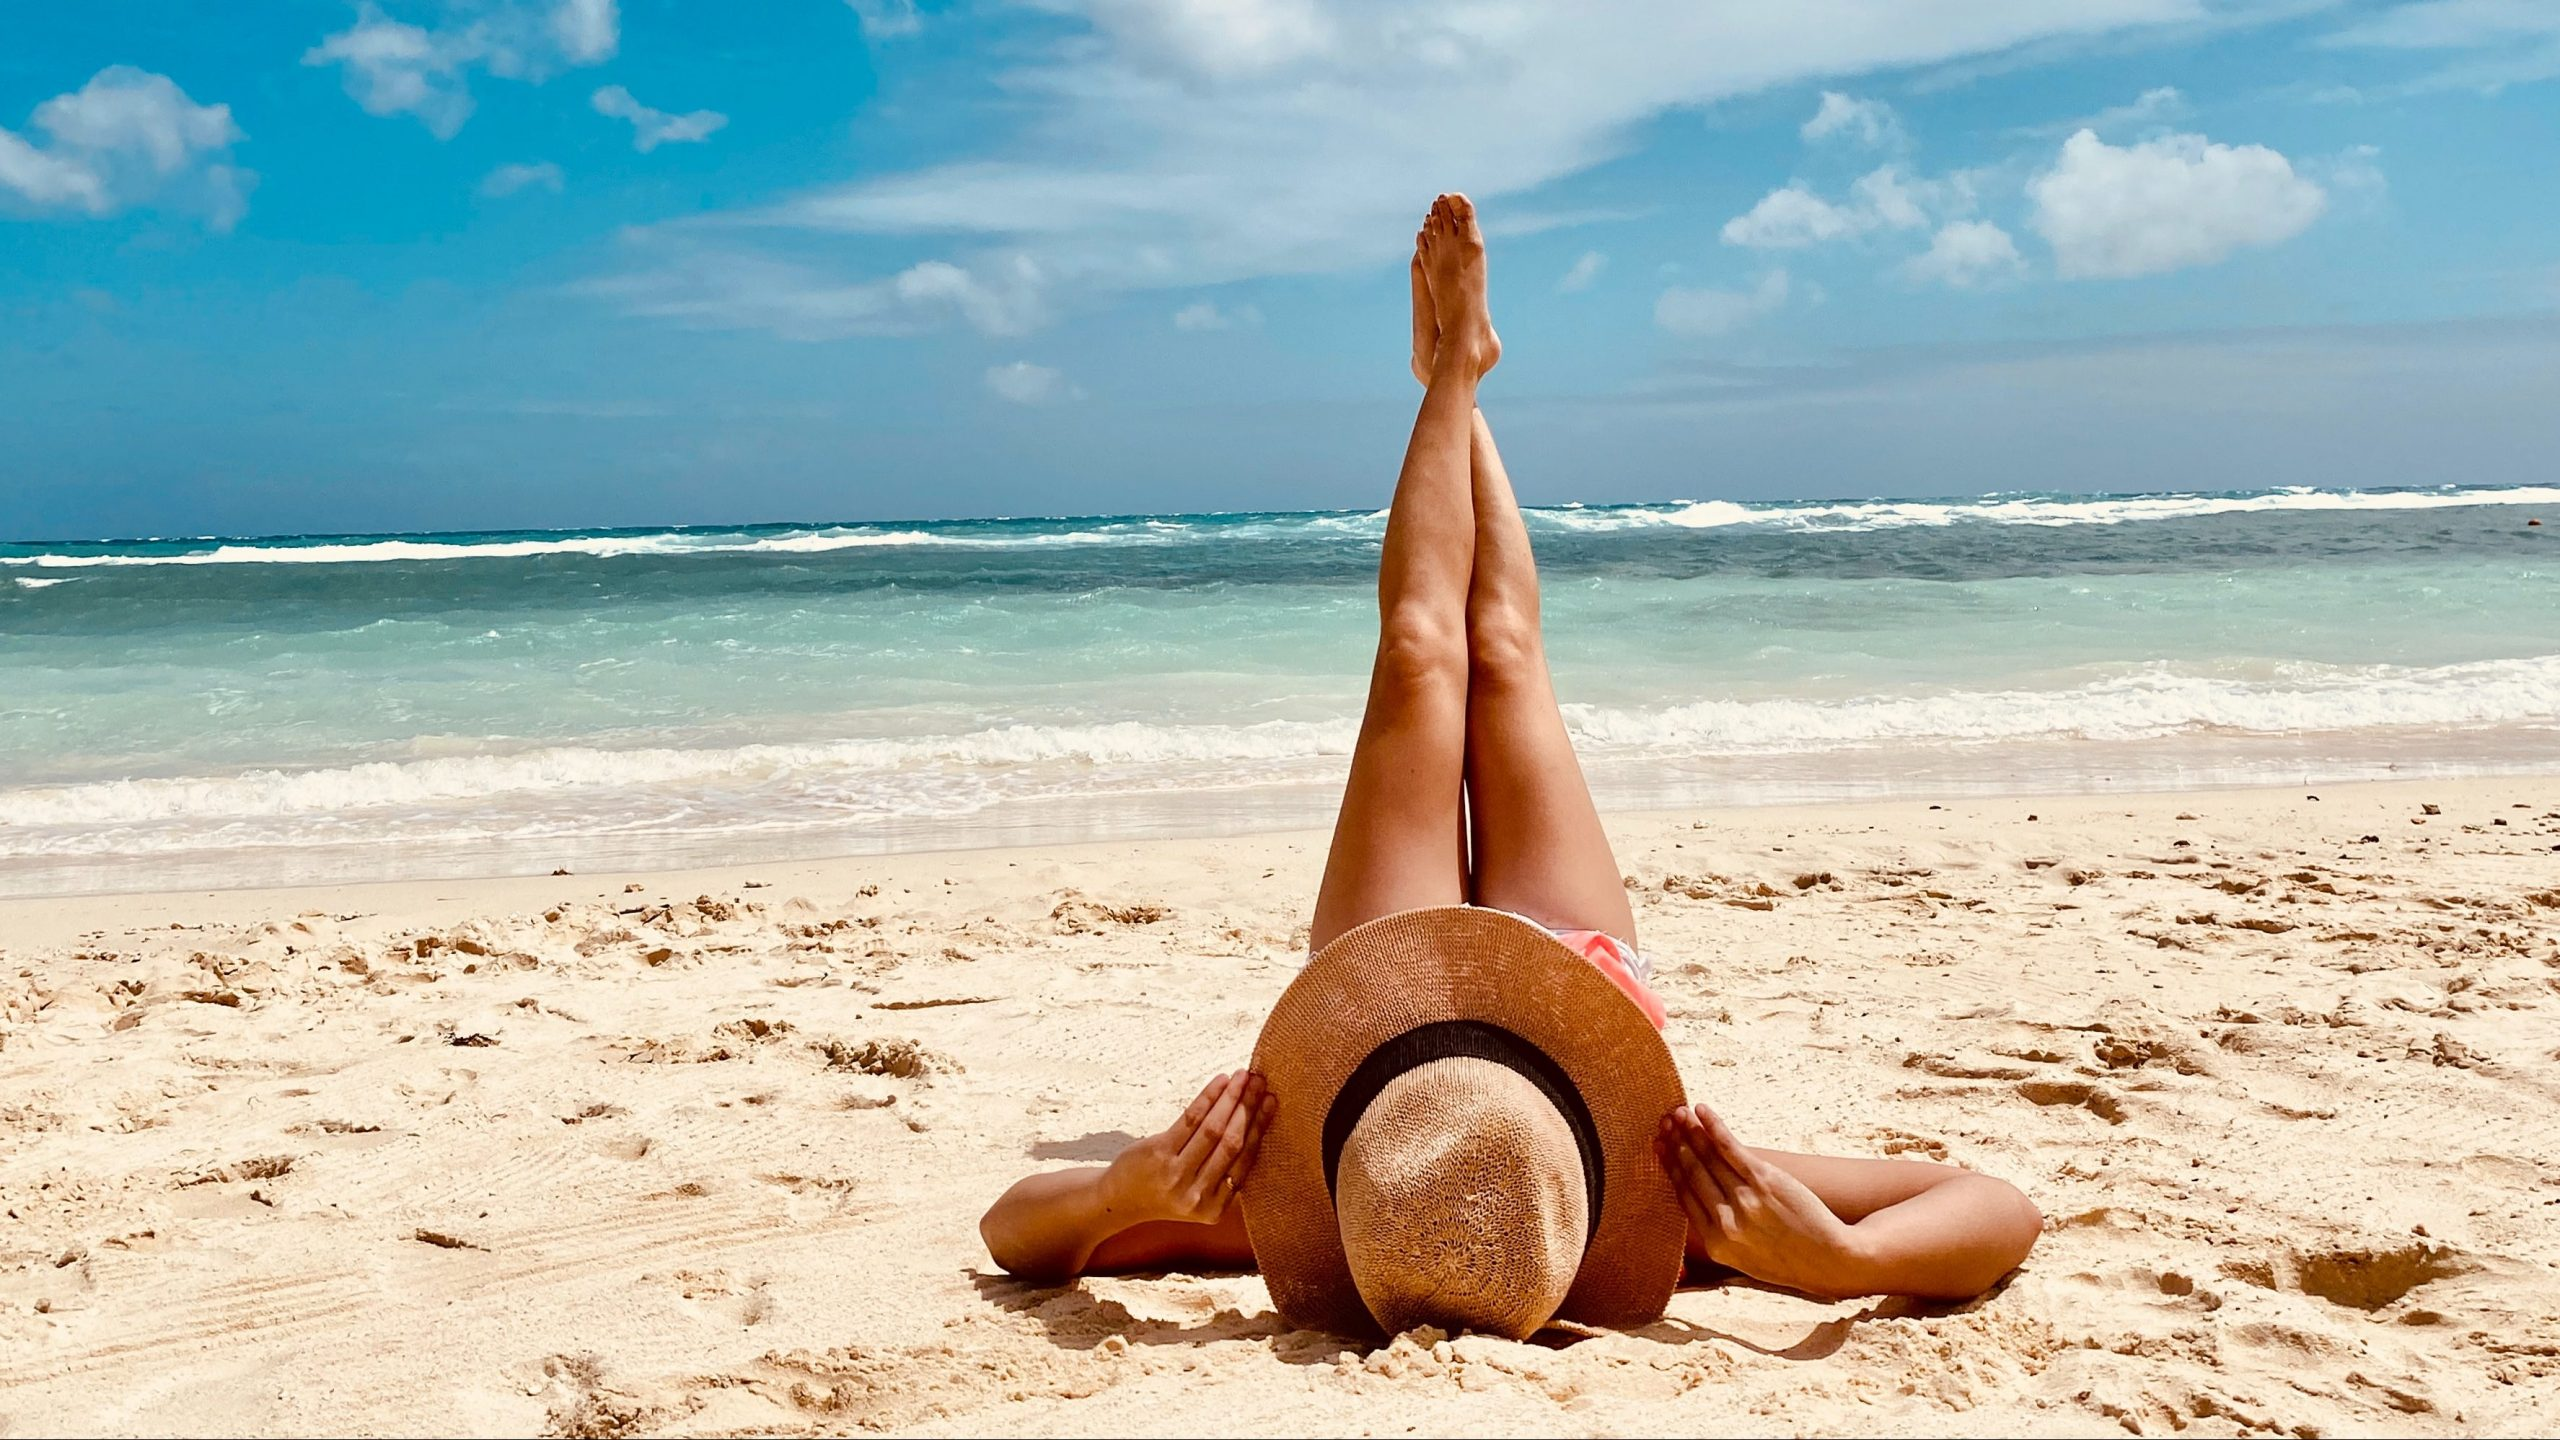 woman laying in the sand Boracay, Malay, Philippines (Photo by Apple Bautista)